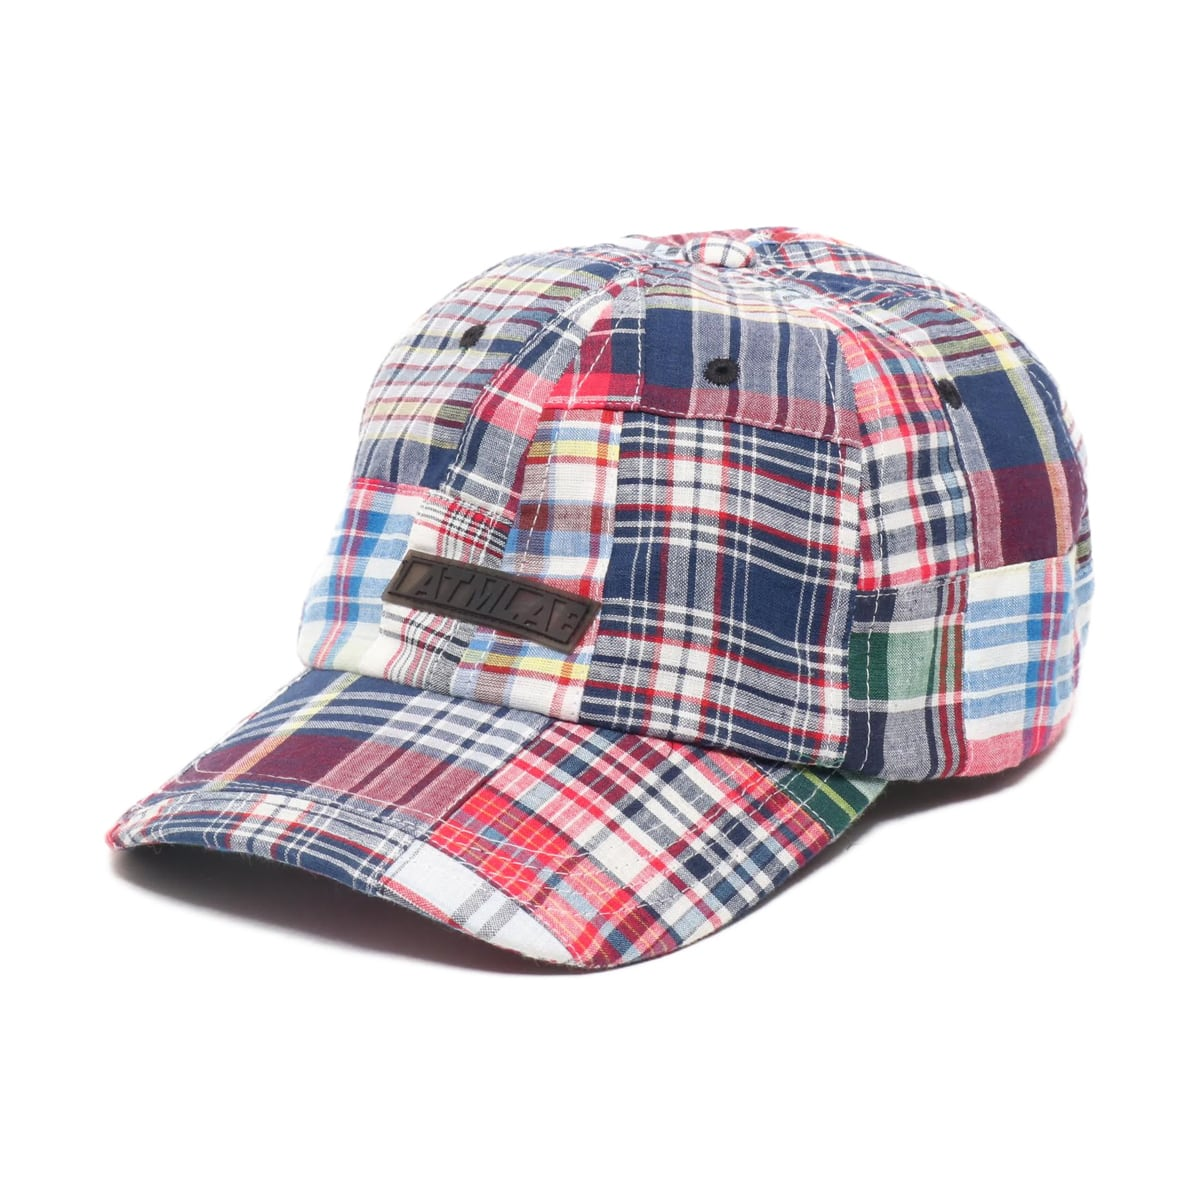 ATMOS LAB PATCHWORK 6 PANEL CAP NAVY 19SP-I_photo_large